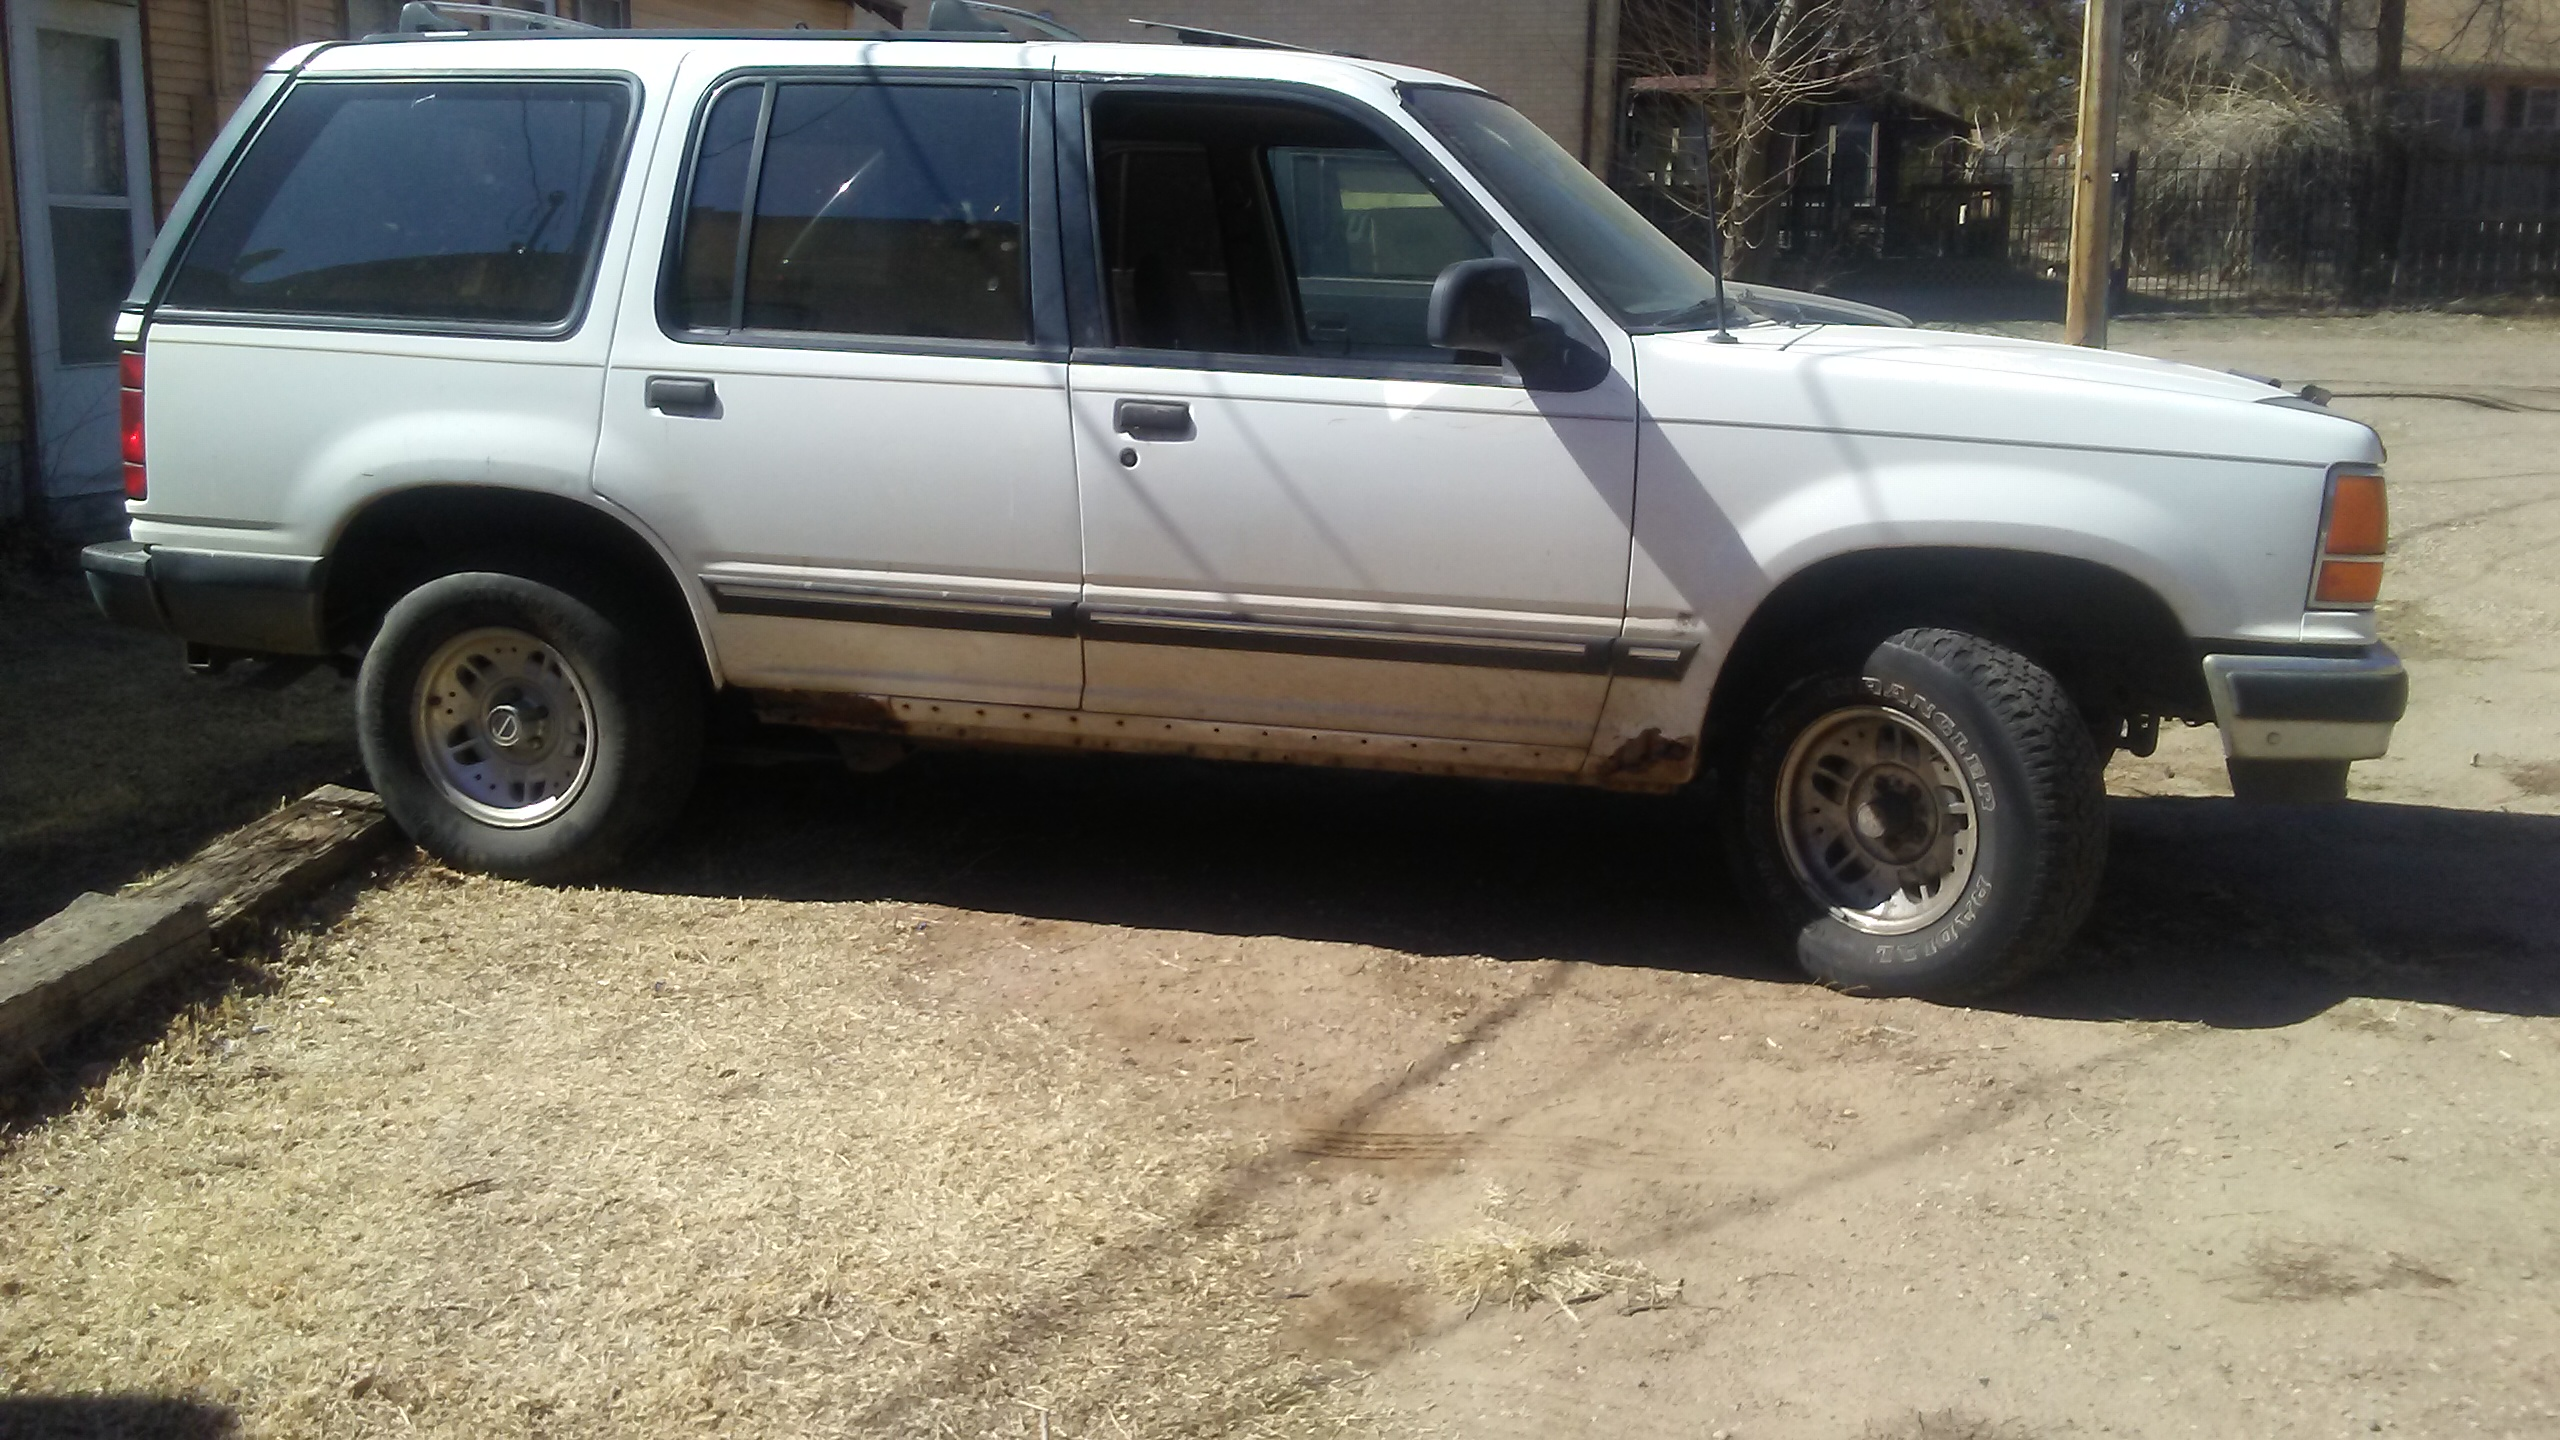 Cash For Cars Iowa City Ia Sell Your Junk Car The Clunker Junker